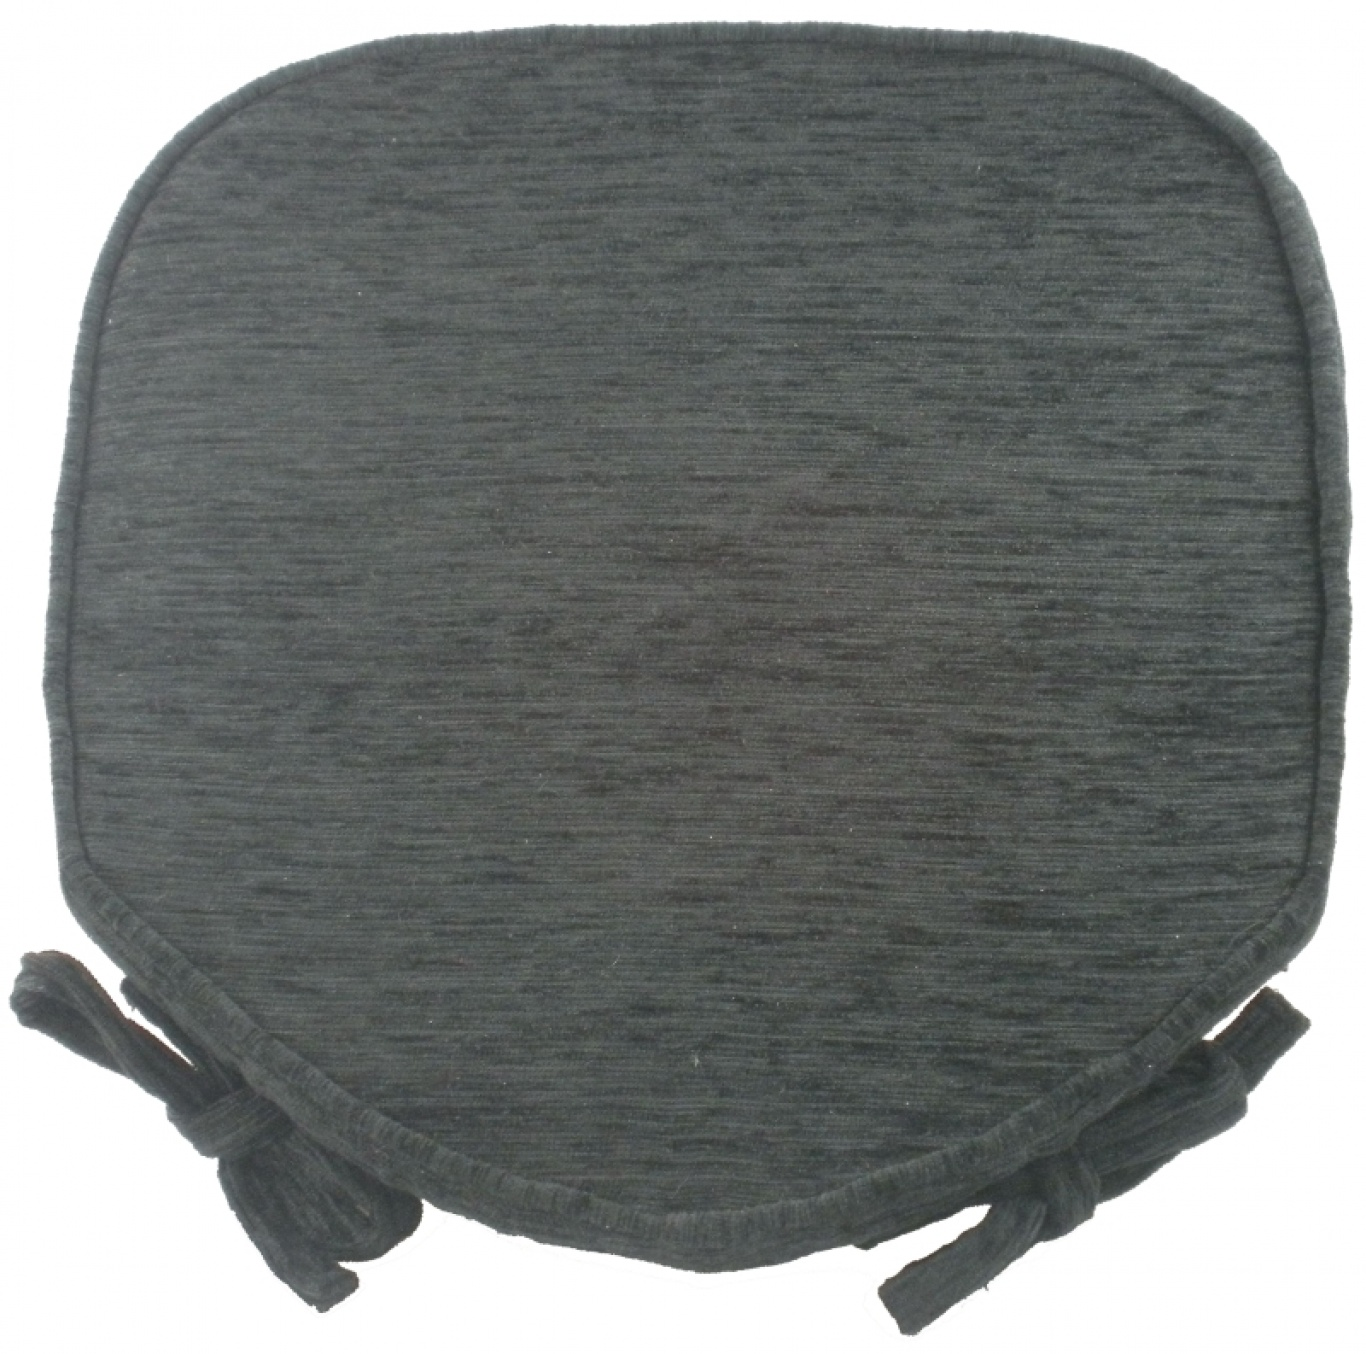 Image of Savannah Walled Seat Pads Black